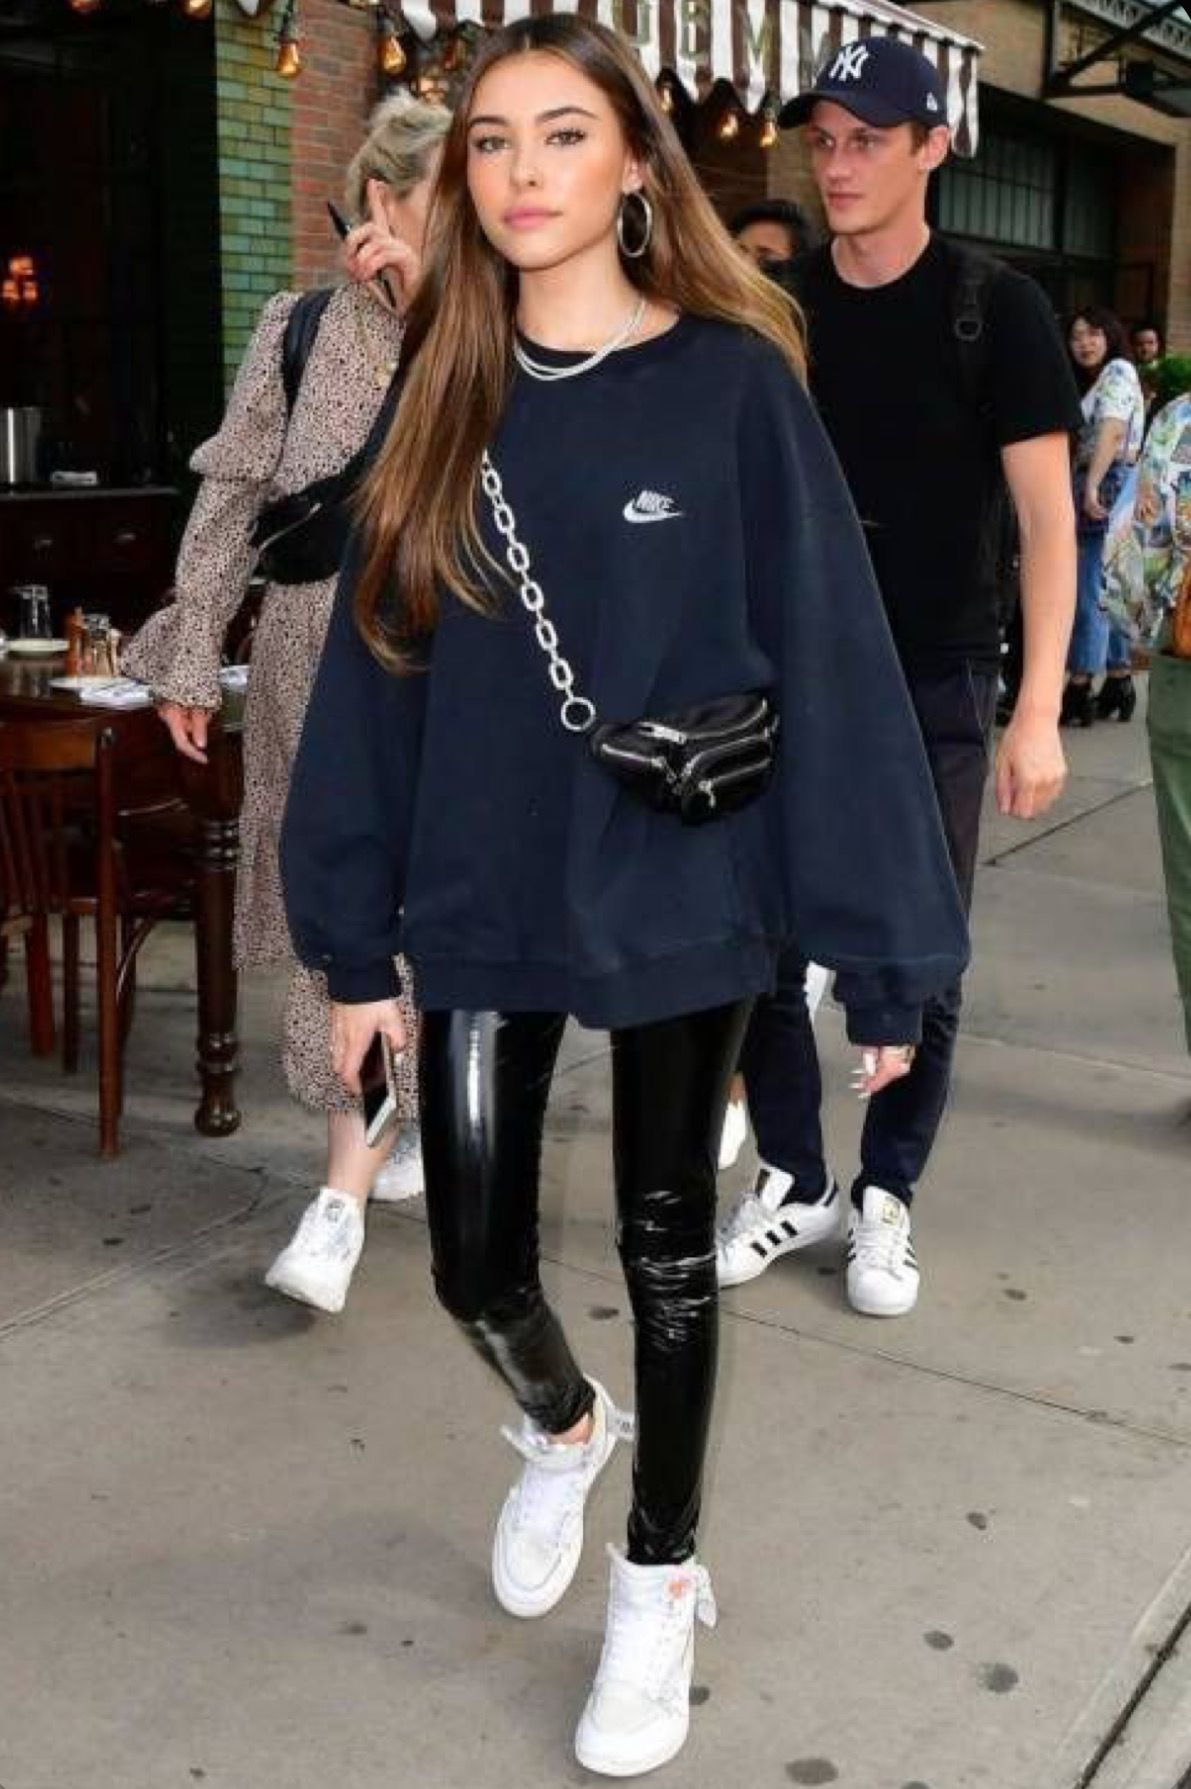 Streetwear Supreme T Shirts In 2020 Madison Beer Outfits Beer Outfit Celebrity Style Casual [ 1789 x 1191 Pixel ]